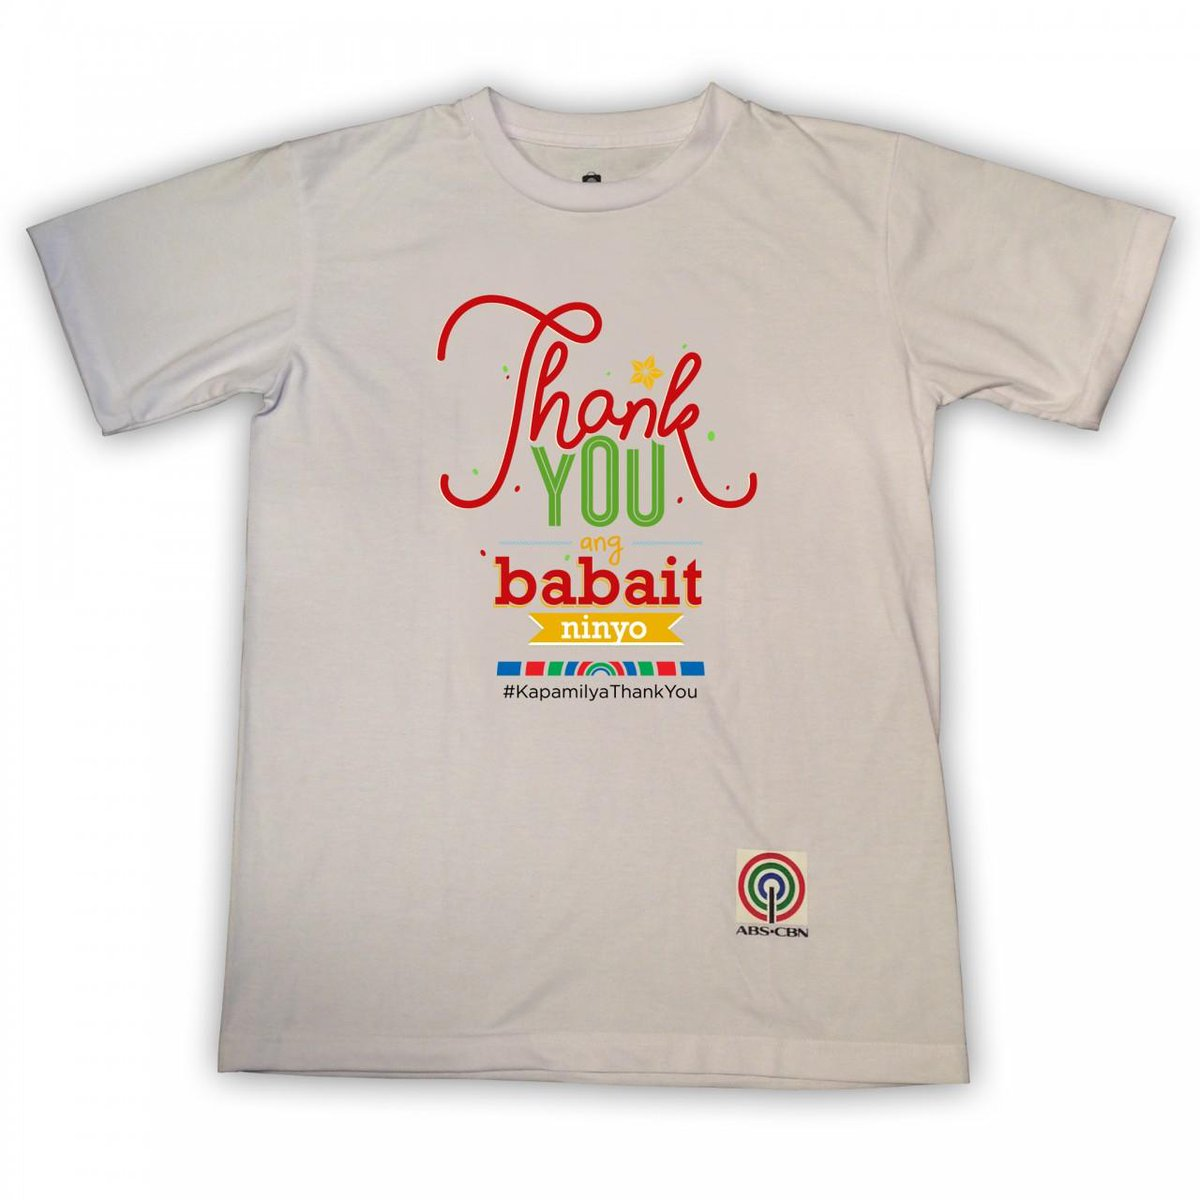 ABS-CBN Store, Quezon City, Philippines: Rated of 5, check Reviews of ABS-CBN Store, Clothing Store. Jump to. Sections of this page. I ordered two shirt last april but i haven't received the item up to now. I already paid it through credit card. Poor /5().